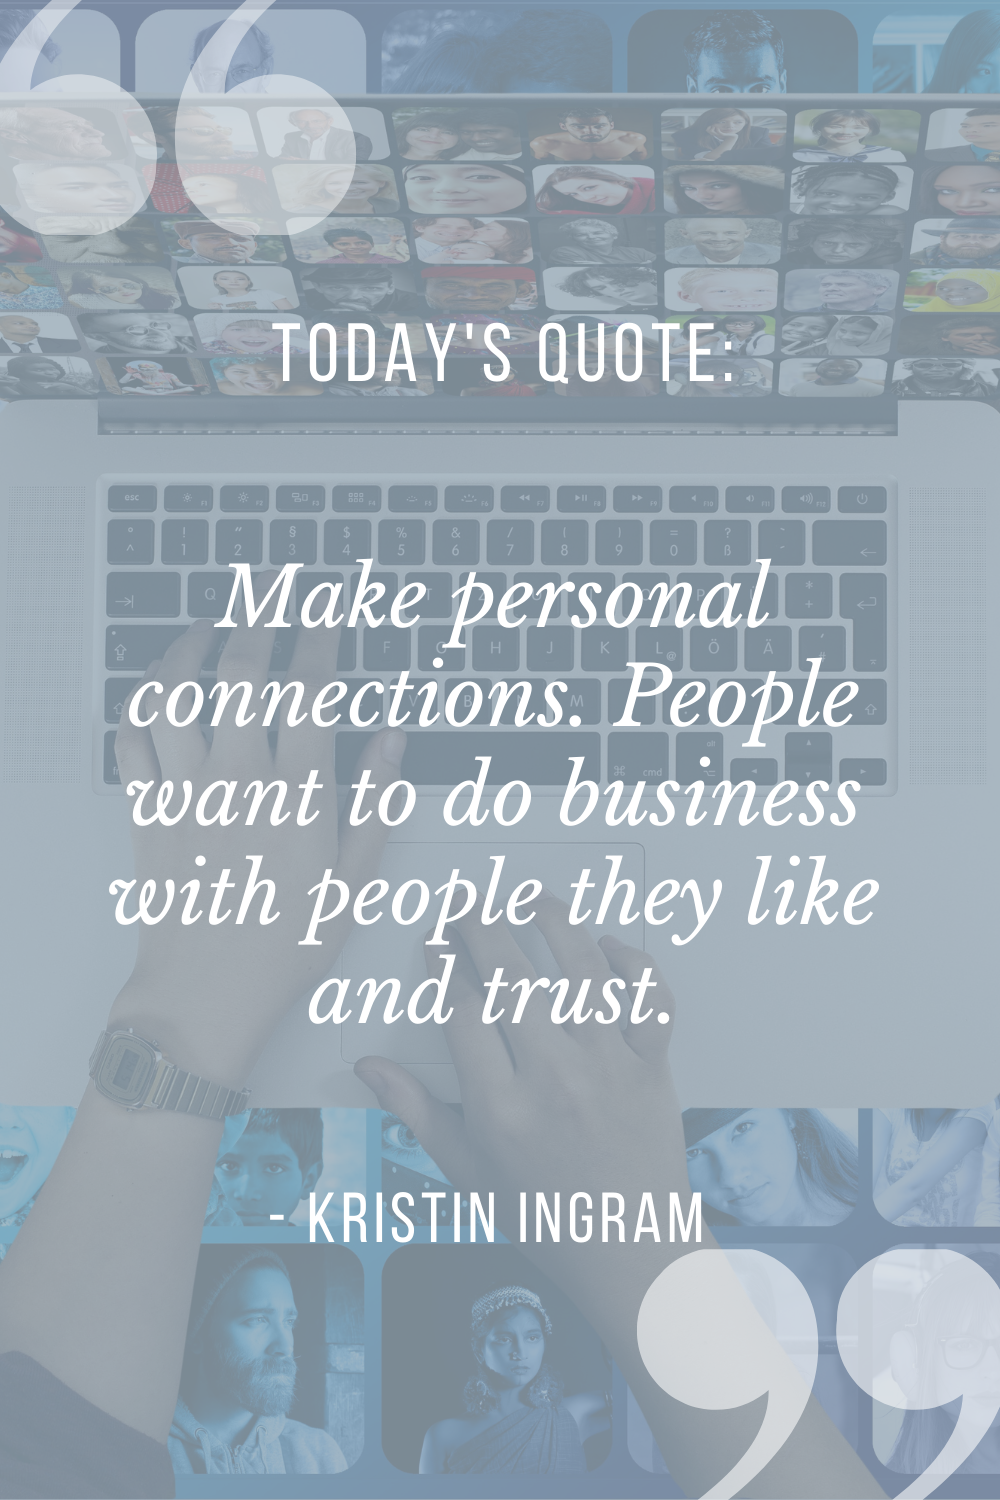 Make personal connections. People want to do business with people they like and trust.